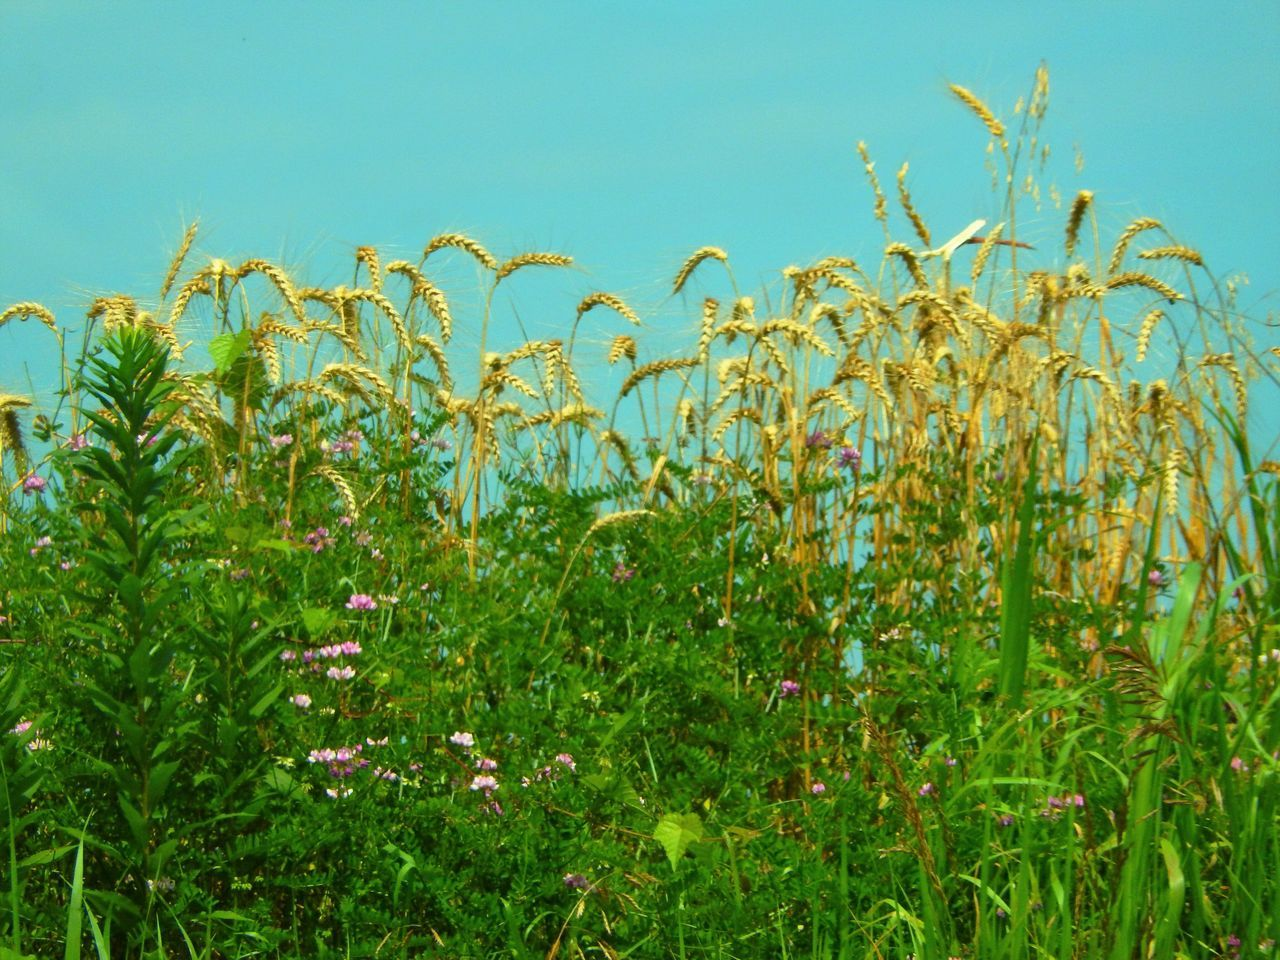 Low Angle View Of Plants Growing On Field